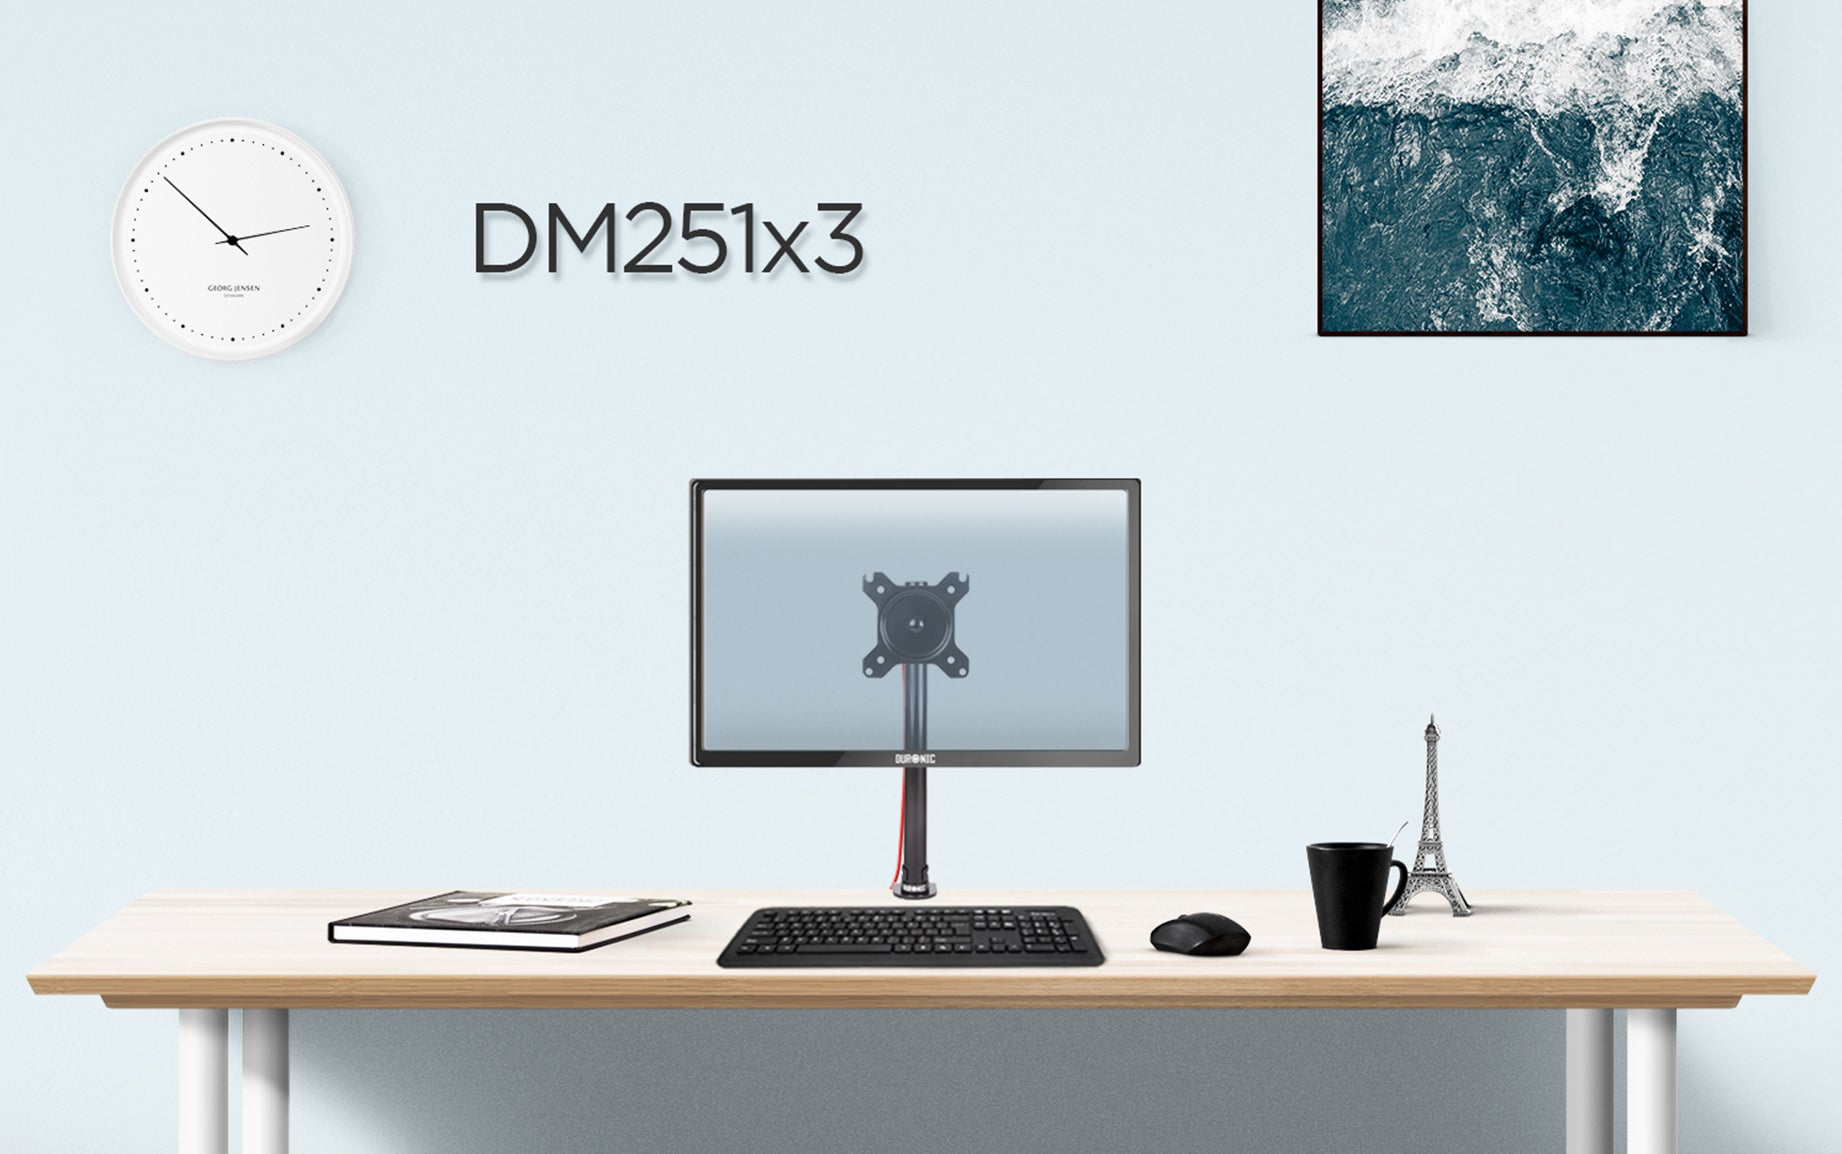 DM251X3 monitor stand on desk top surface, surrounded by office accessories.